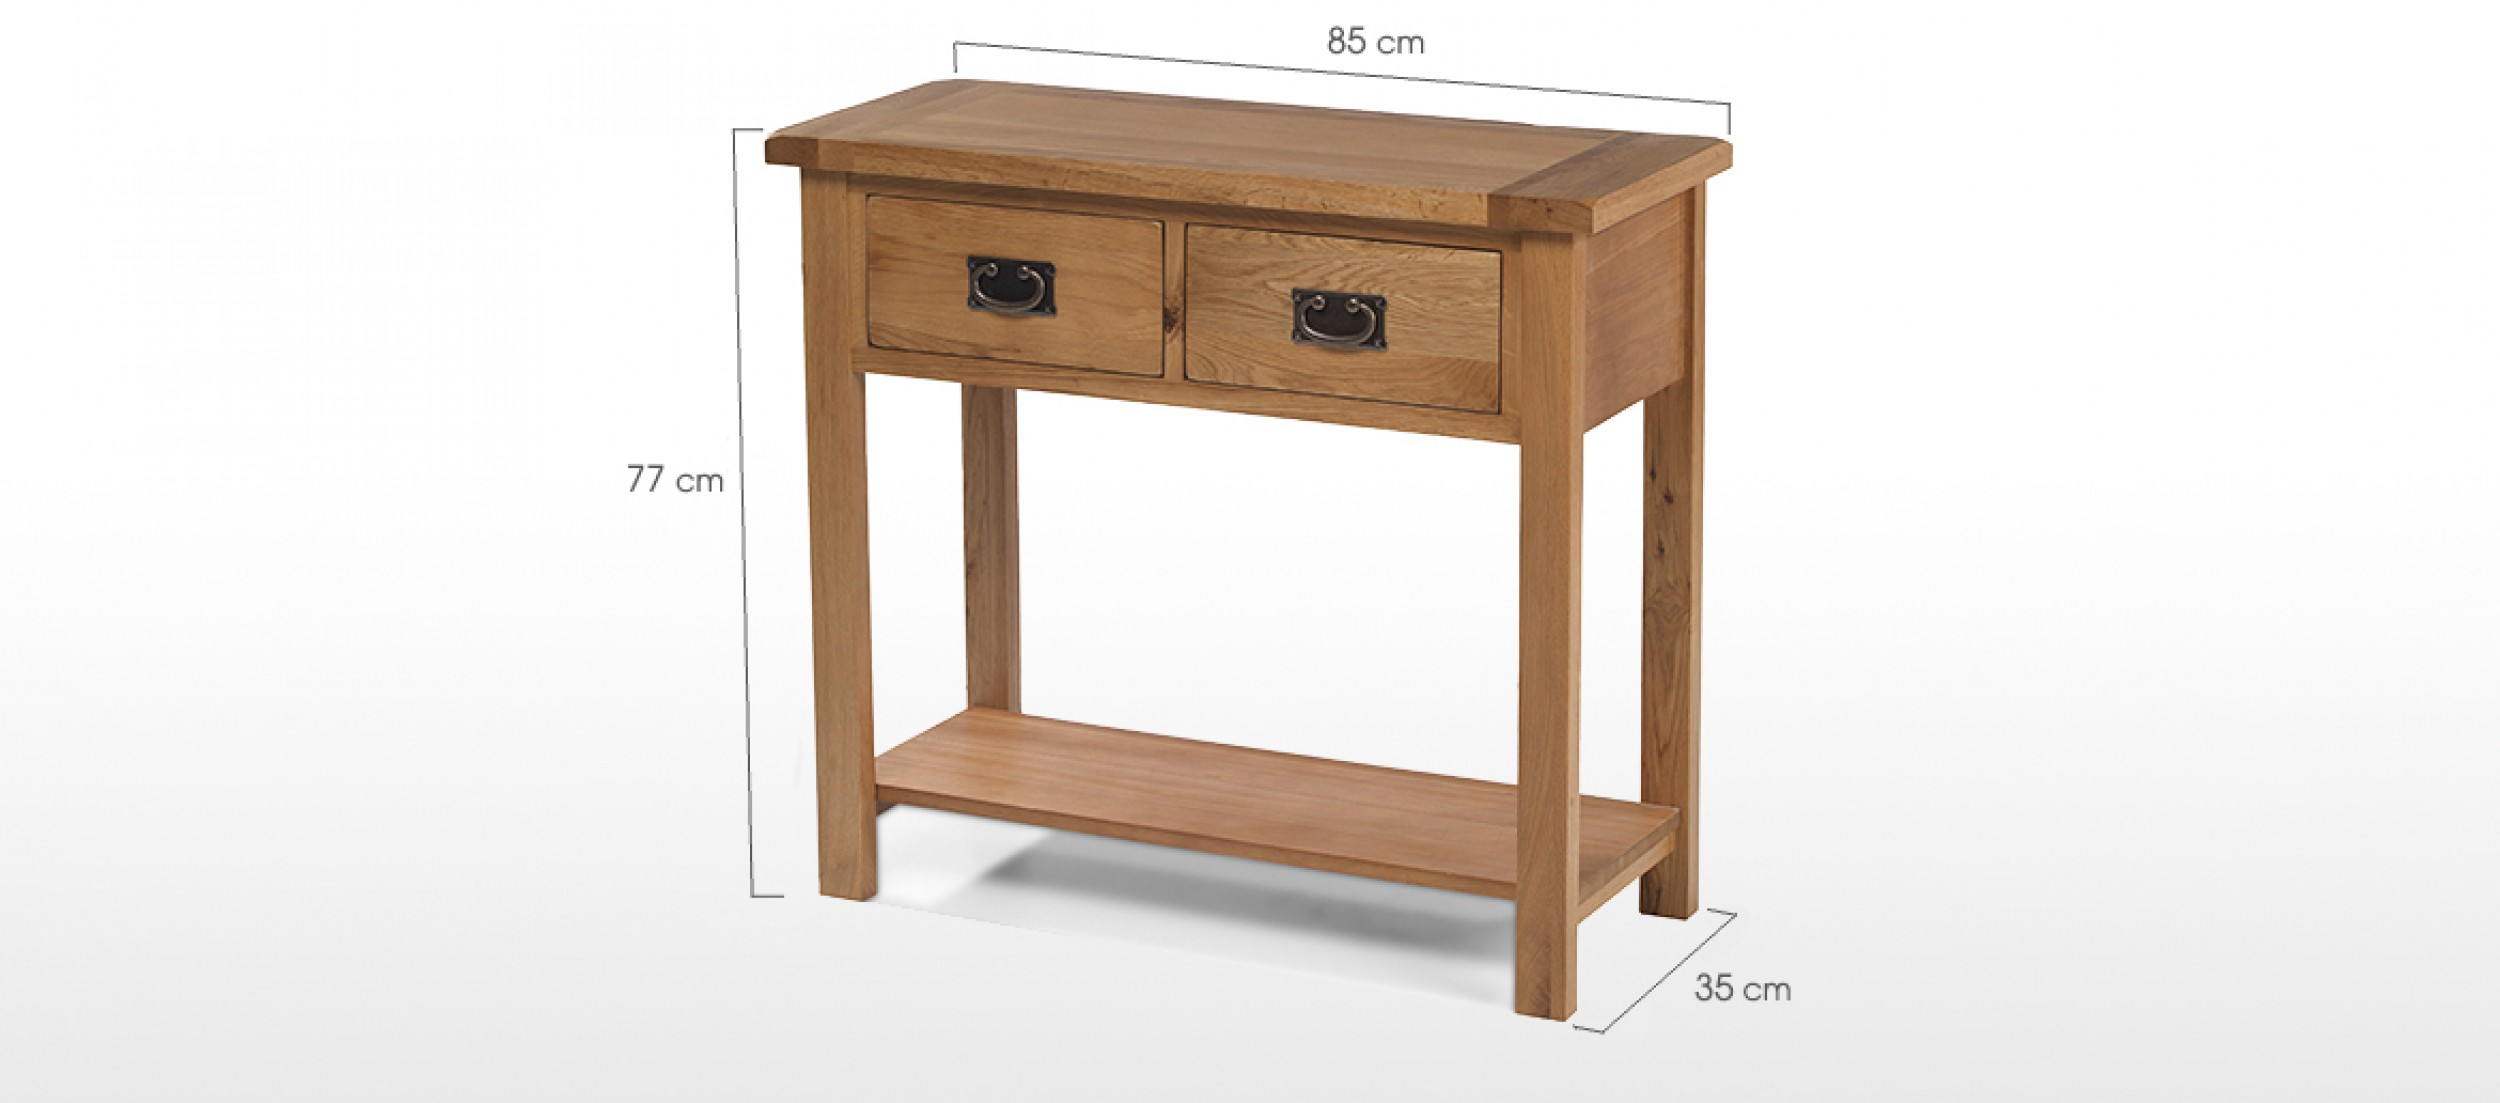 Rustic Oak Console Table Quercus Living. Full resolution‎  image, nominally Width 2500 Height 1103 pixels, image with #6C4A31.